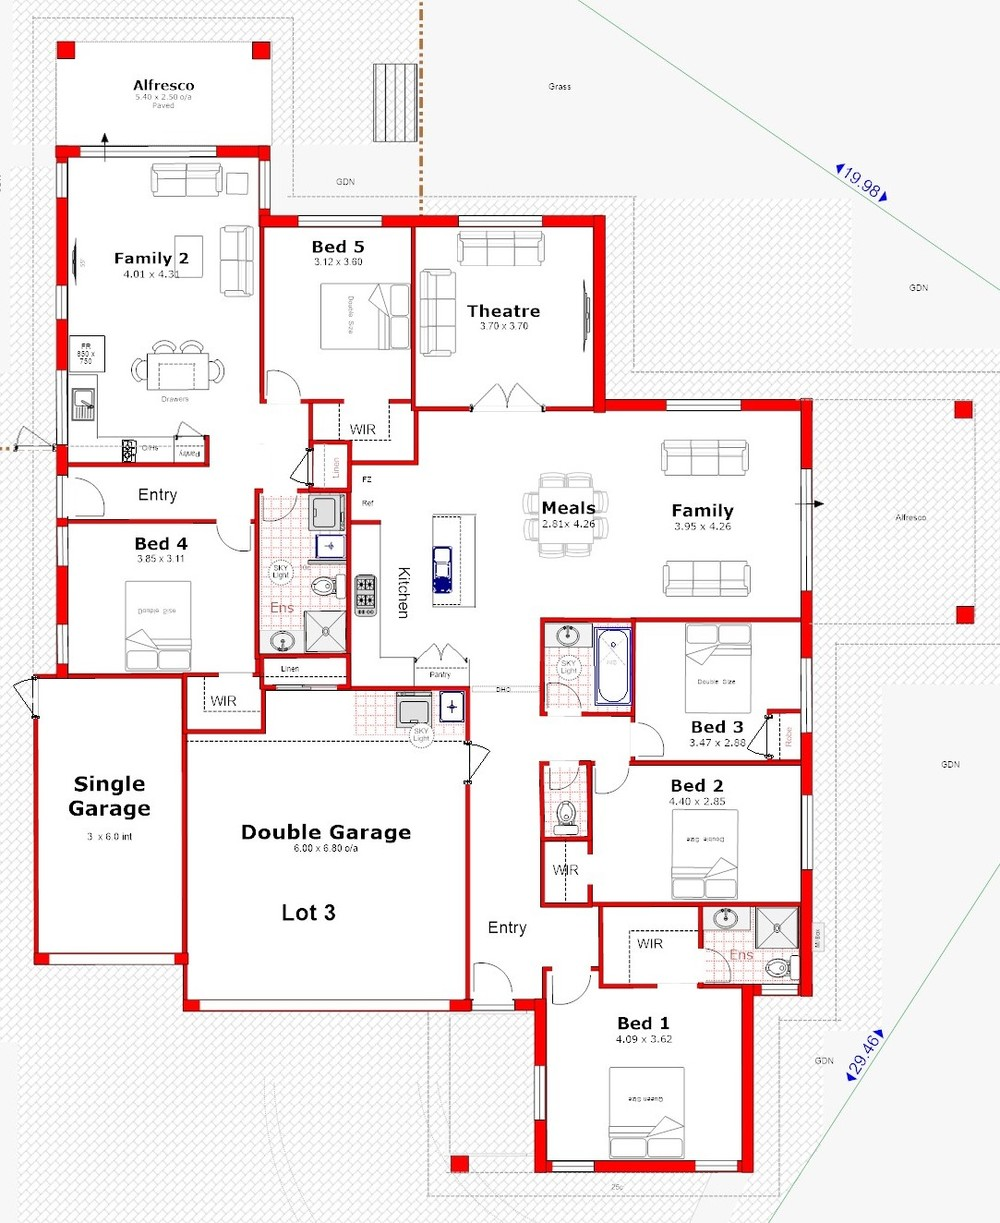 Dual occupancy house plans house plans for Dual occupancy home designs sydney